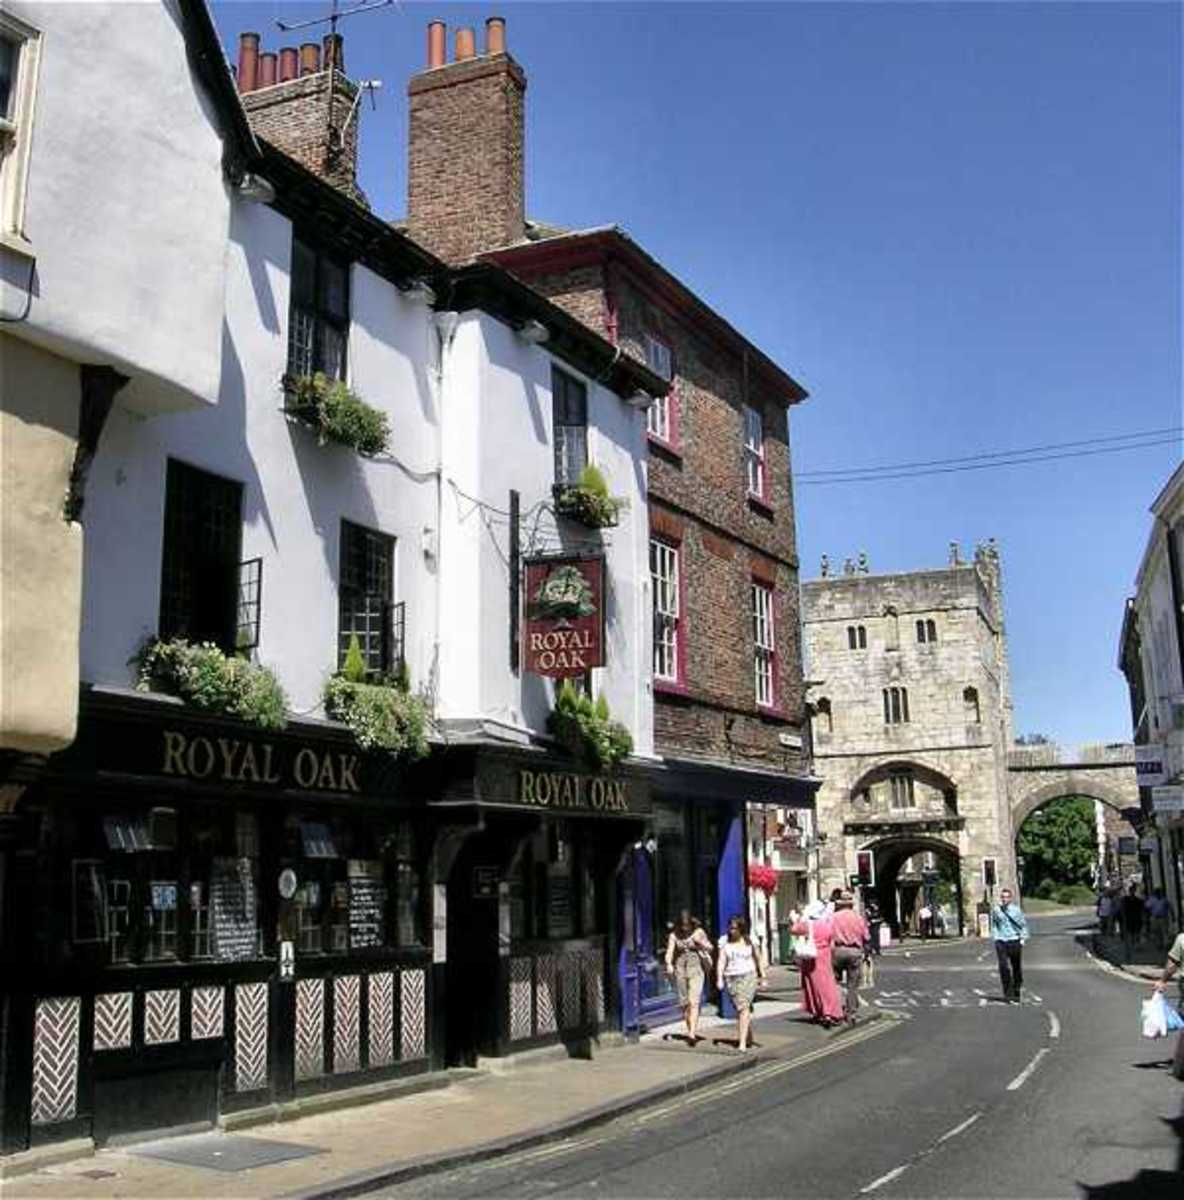 The Royal Oak Pub in York